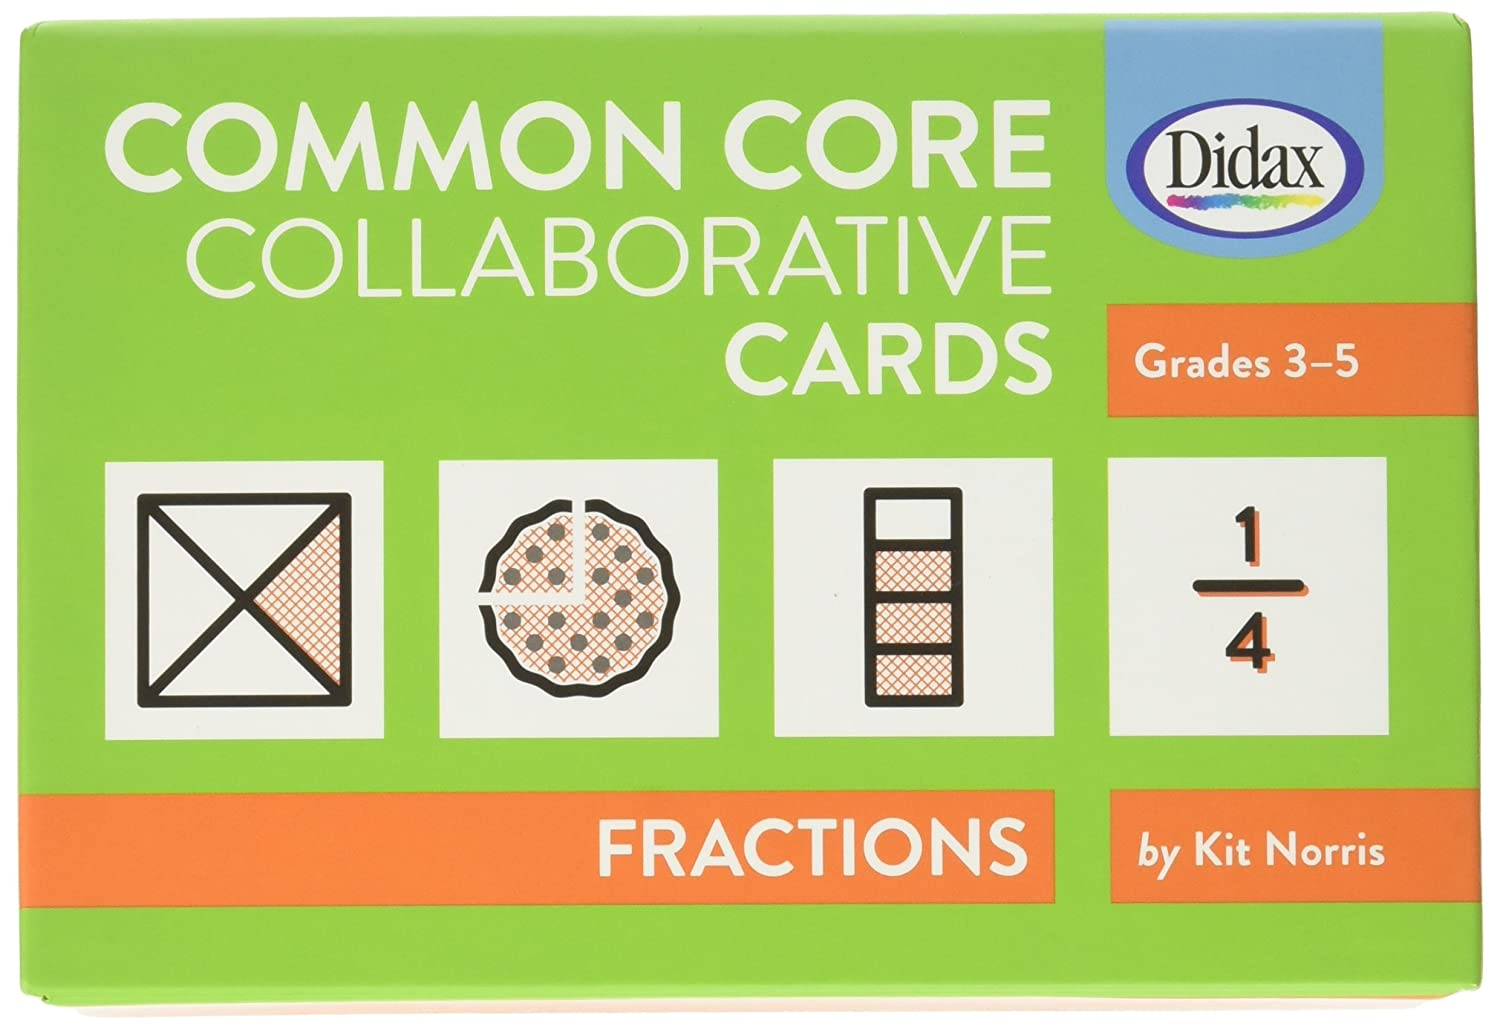 Didax Didax Didax Educational Resources gemeinsamen kollaboratives cards-fractions B00B93WTVA | Moderne Muster